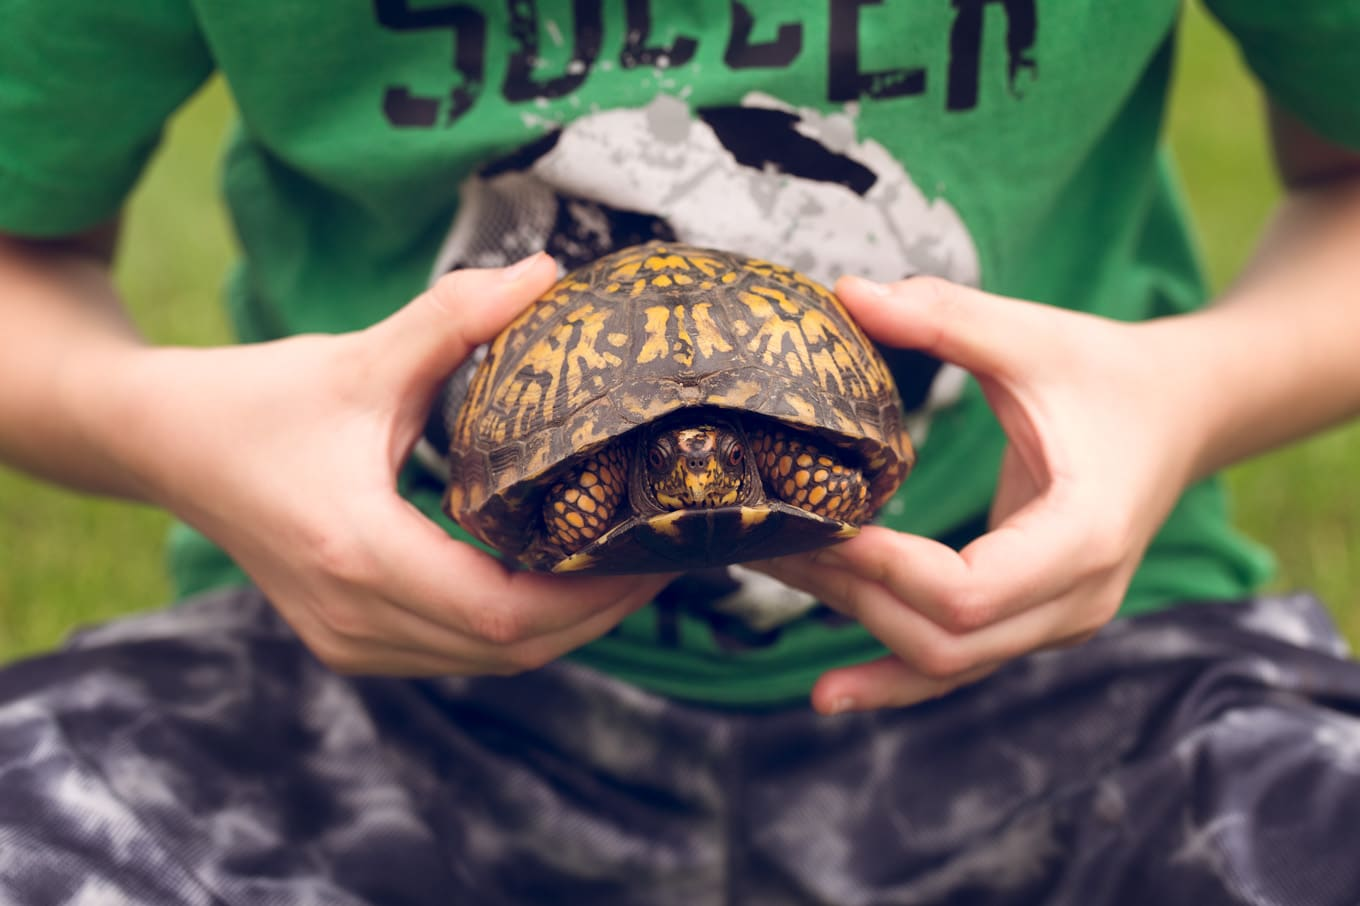 Boy Holding Box Turtle